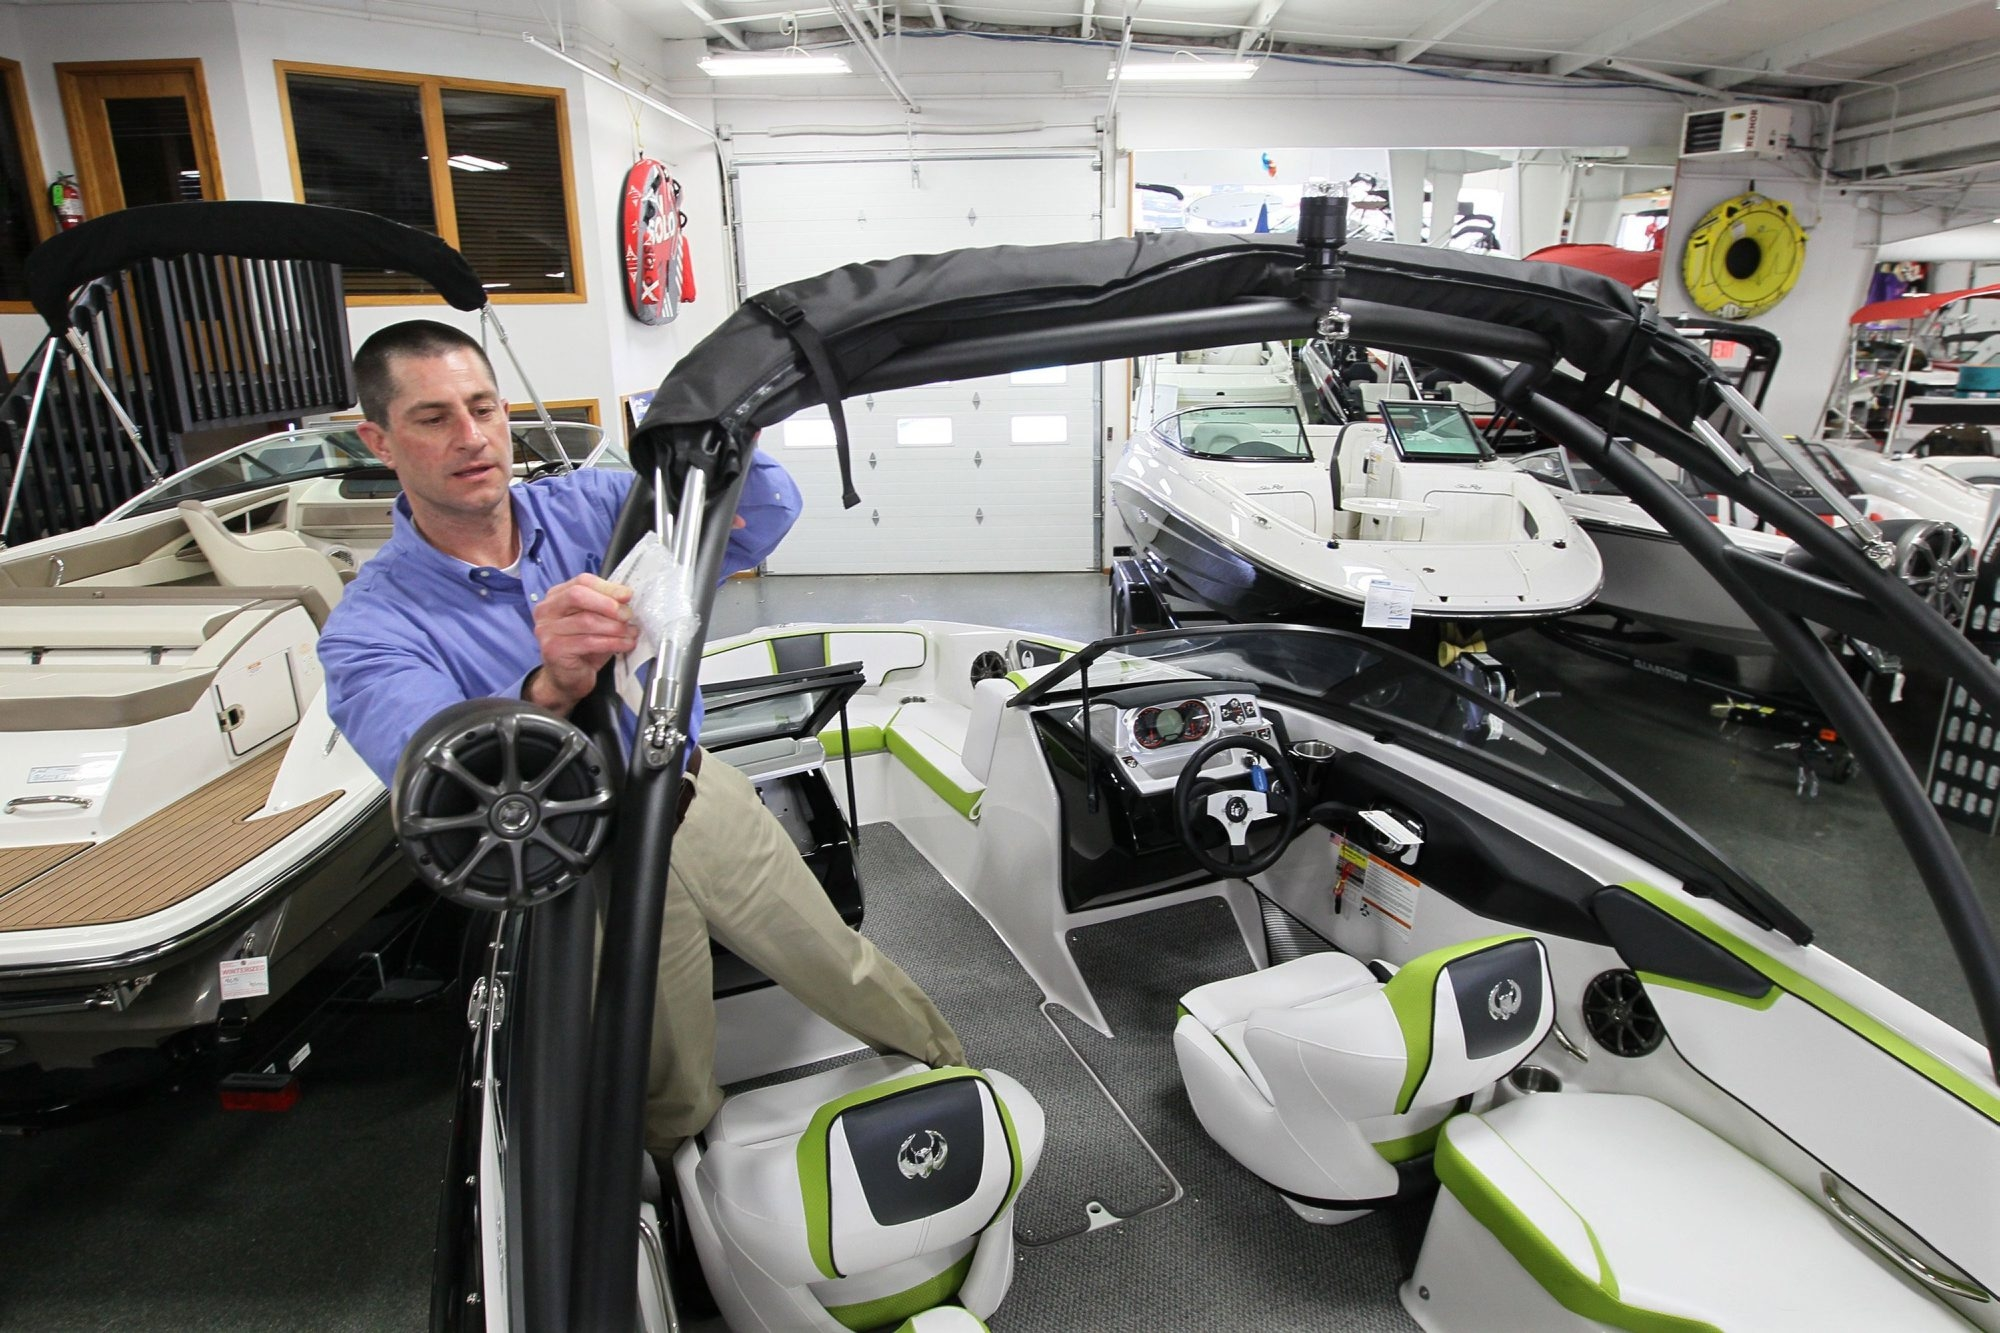 Todd Riepe, of SkipperBud's, gets a Scarab jet boat ready for sale, April 8, 2014, in Pewaukee, Wis. Boats that use a jet drive instead of propeller are becoming more popular. (Michael Sears/Milwaukee Journal Sentinel/MCT)